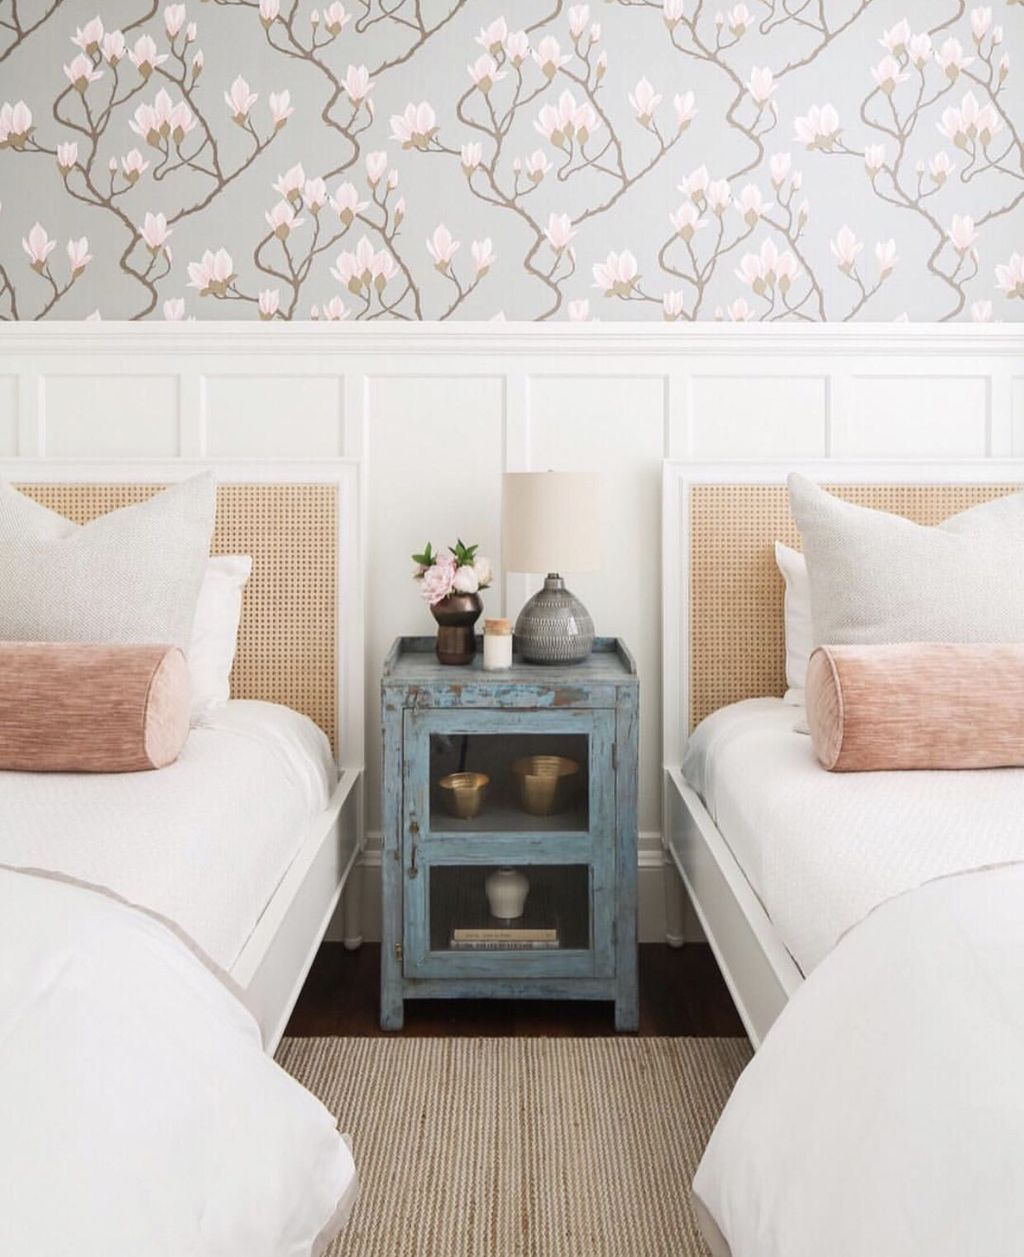 Best Bedroom Wallpaper Decor Ideas That Suitable For Your Family 02